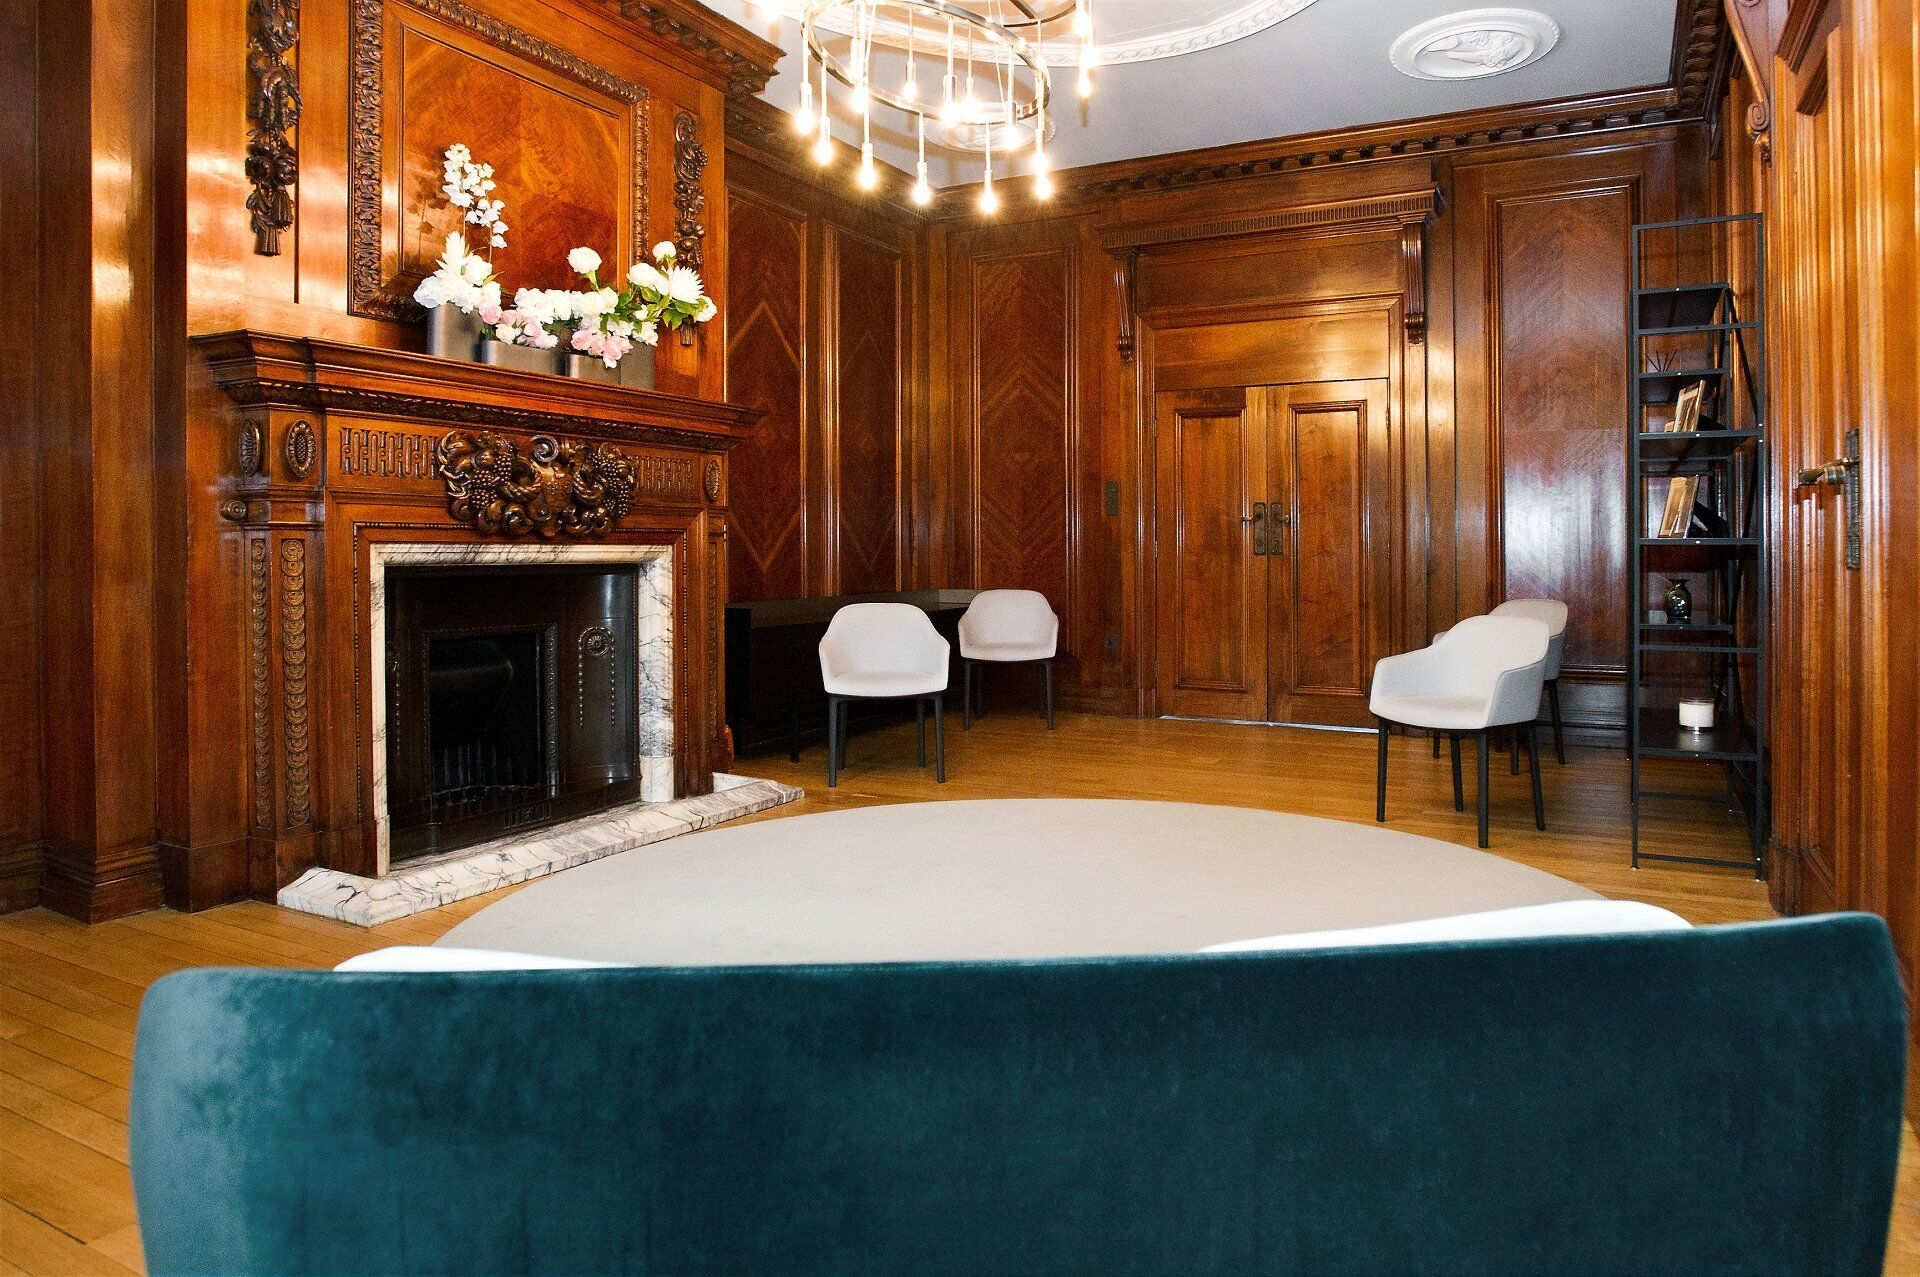 seating for 5 or 6 guests in the marylebone room with the couple stood in front of the fireplace